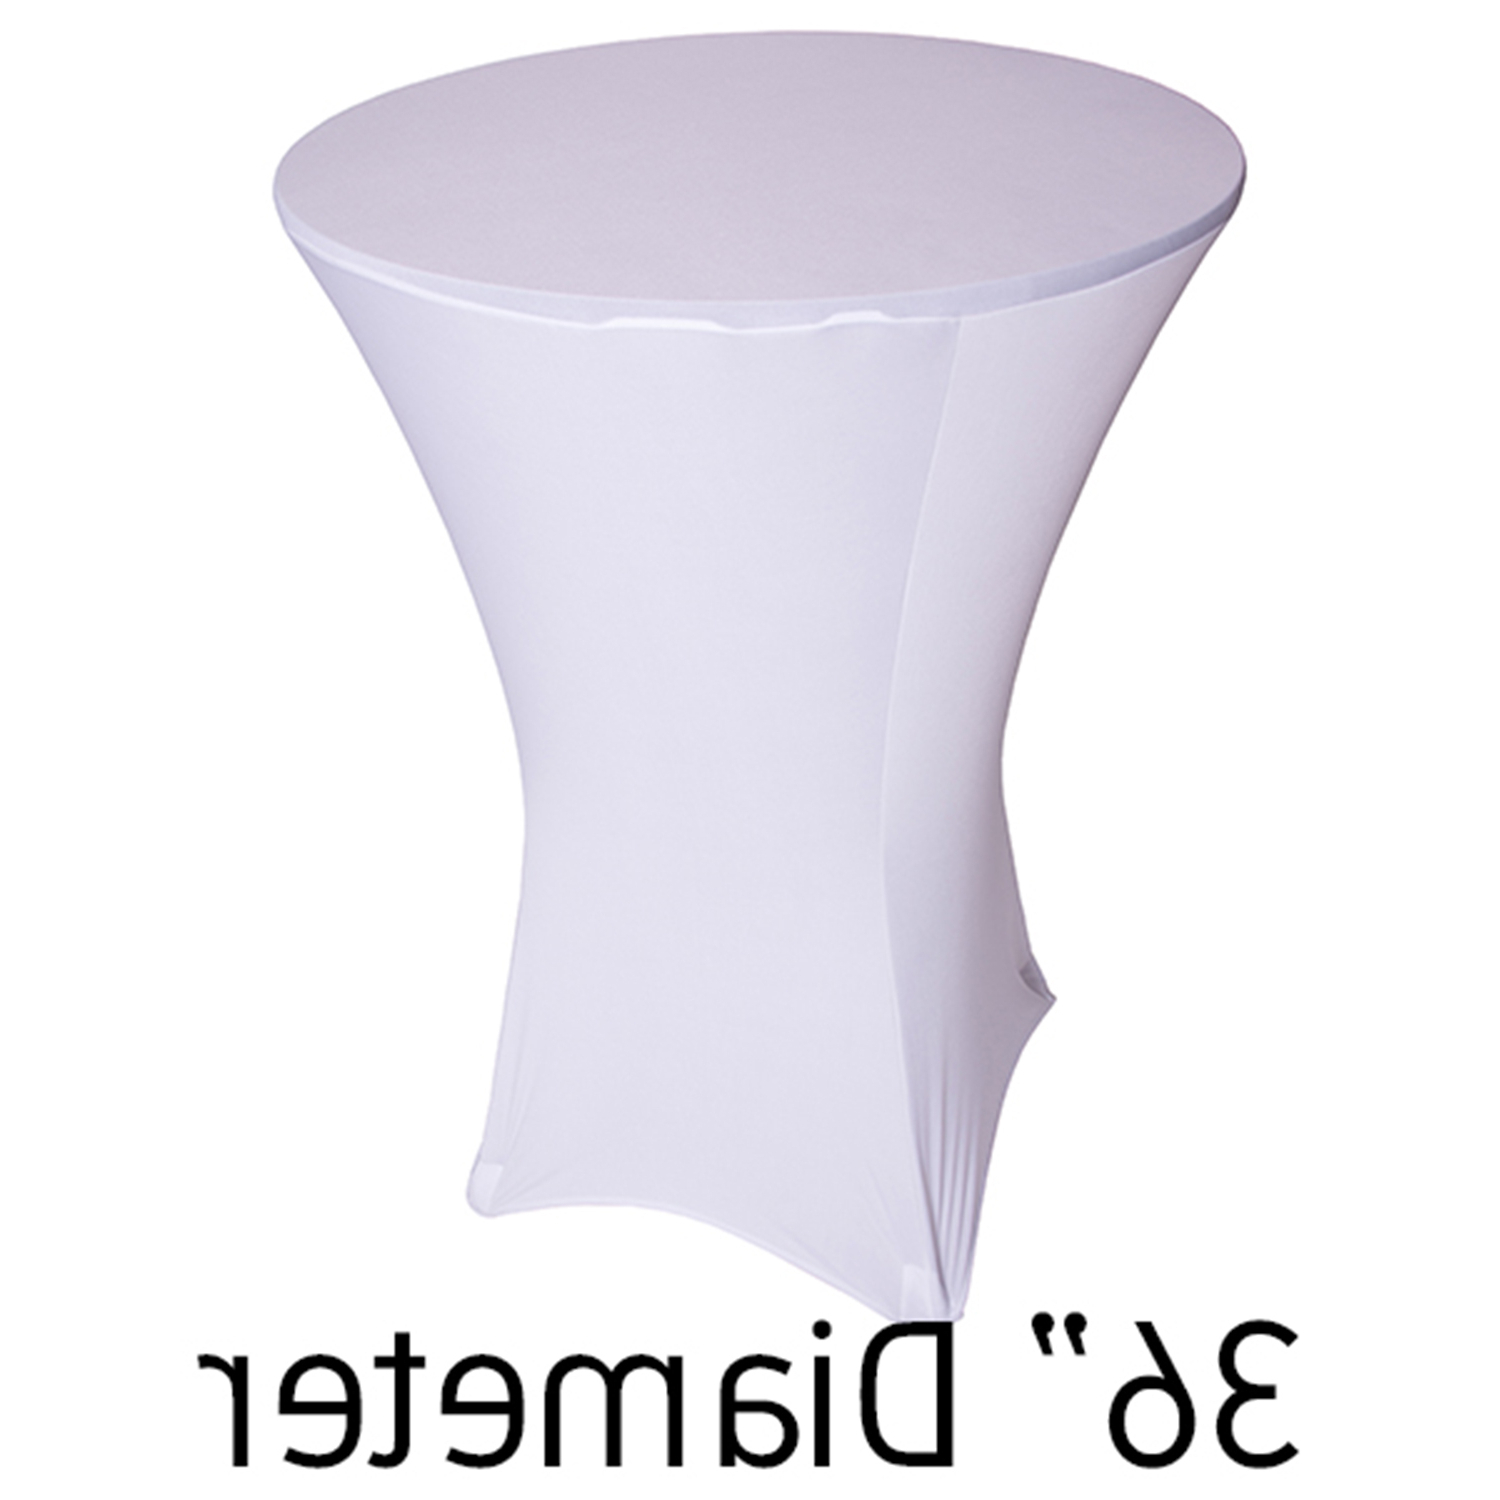 Spandex Linen For Cocktail Tables (Gallery 16 of 20)